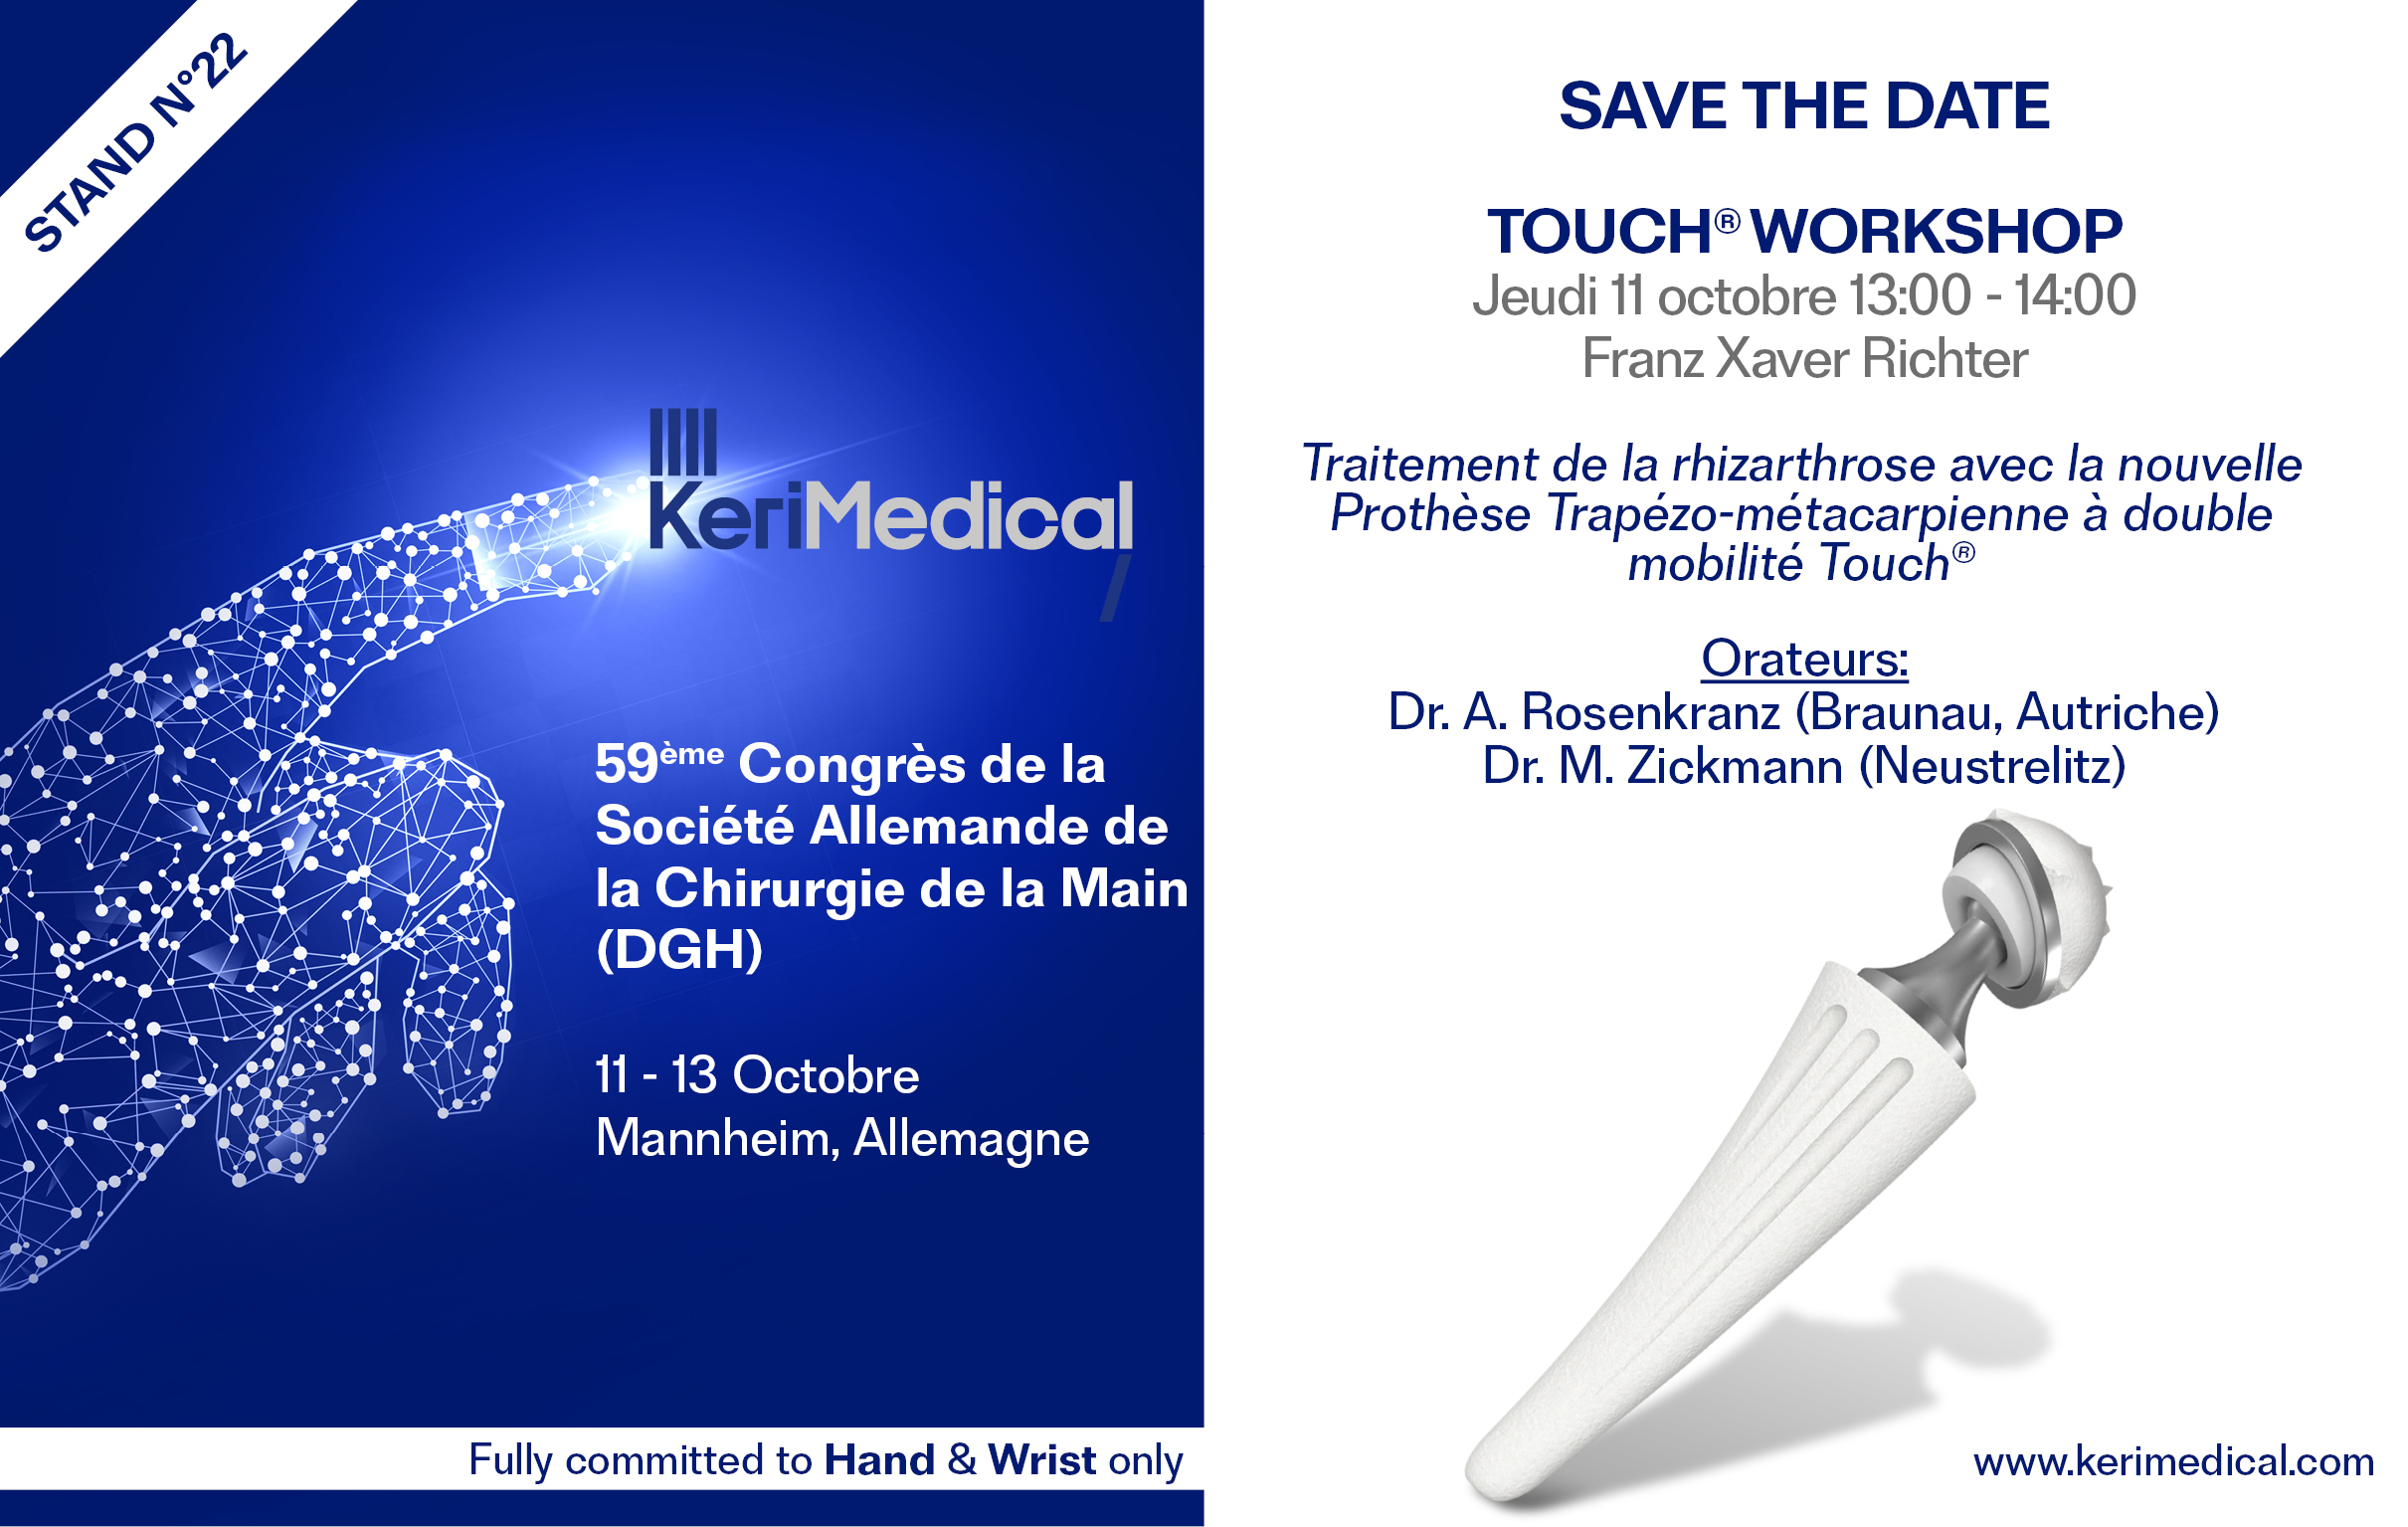 Save the date kerimedical dgh congres allemagne prothese tmc double mobilite trapezo-metacarpienne